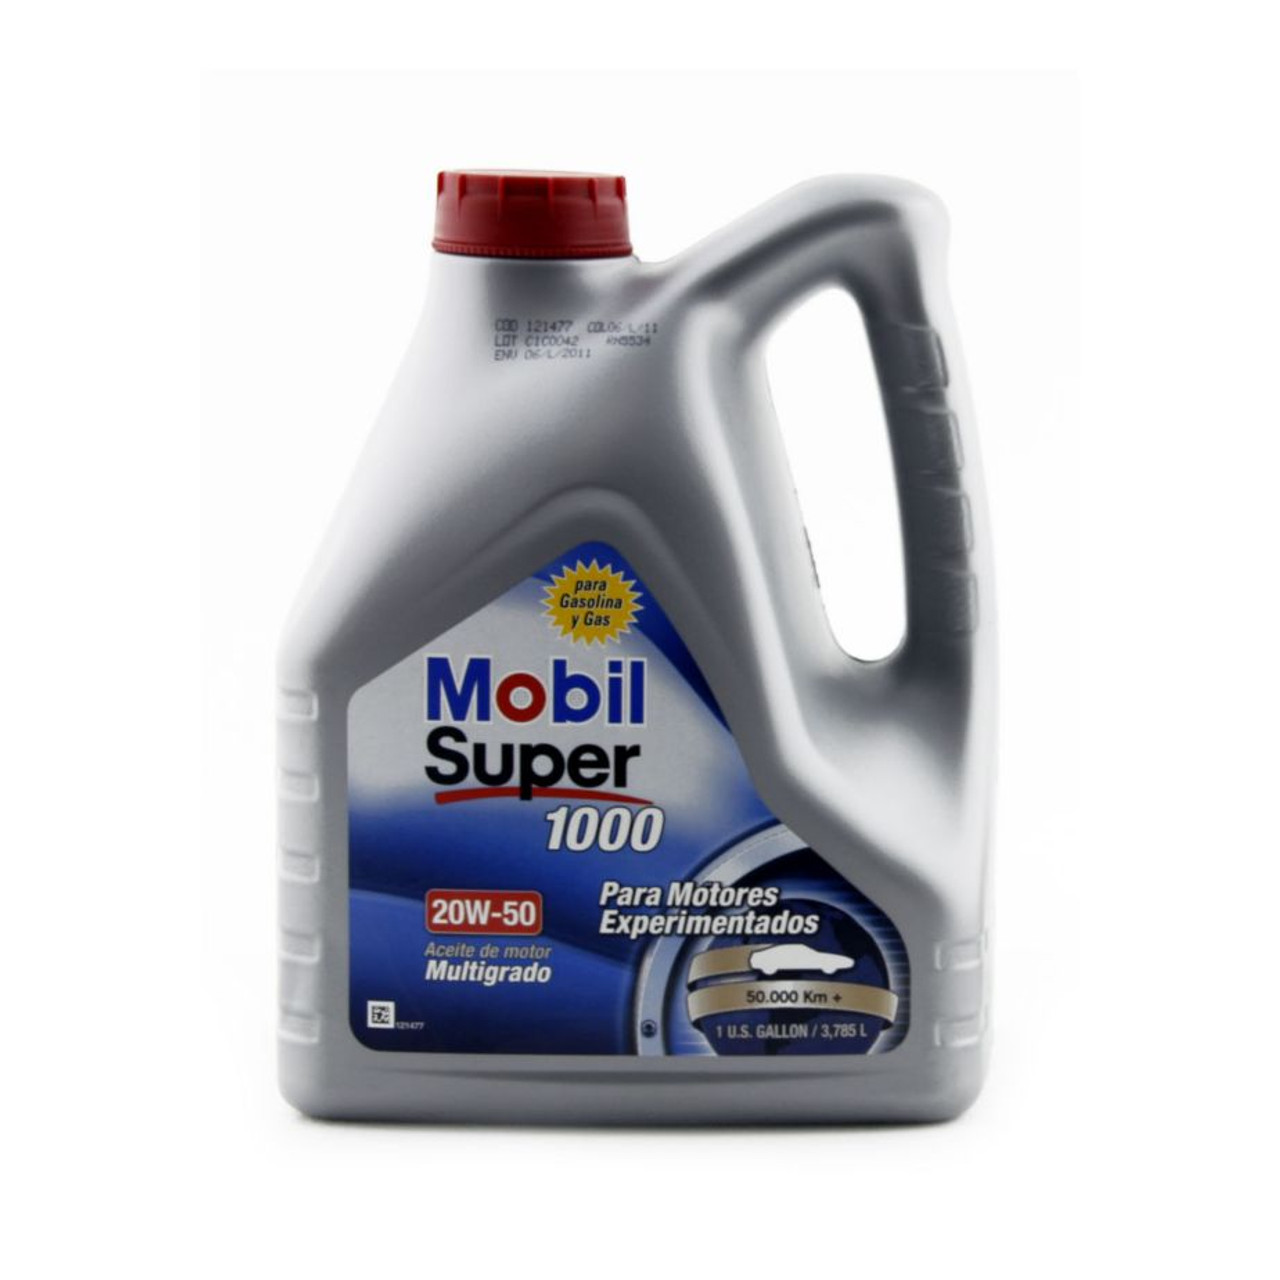 Mobil Super 1000 20W50- 4liters Lubricant